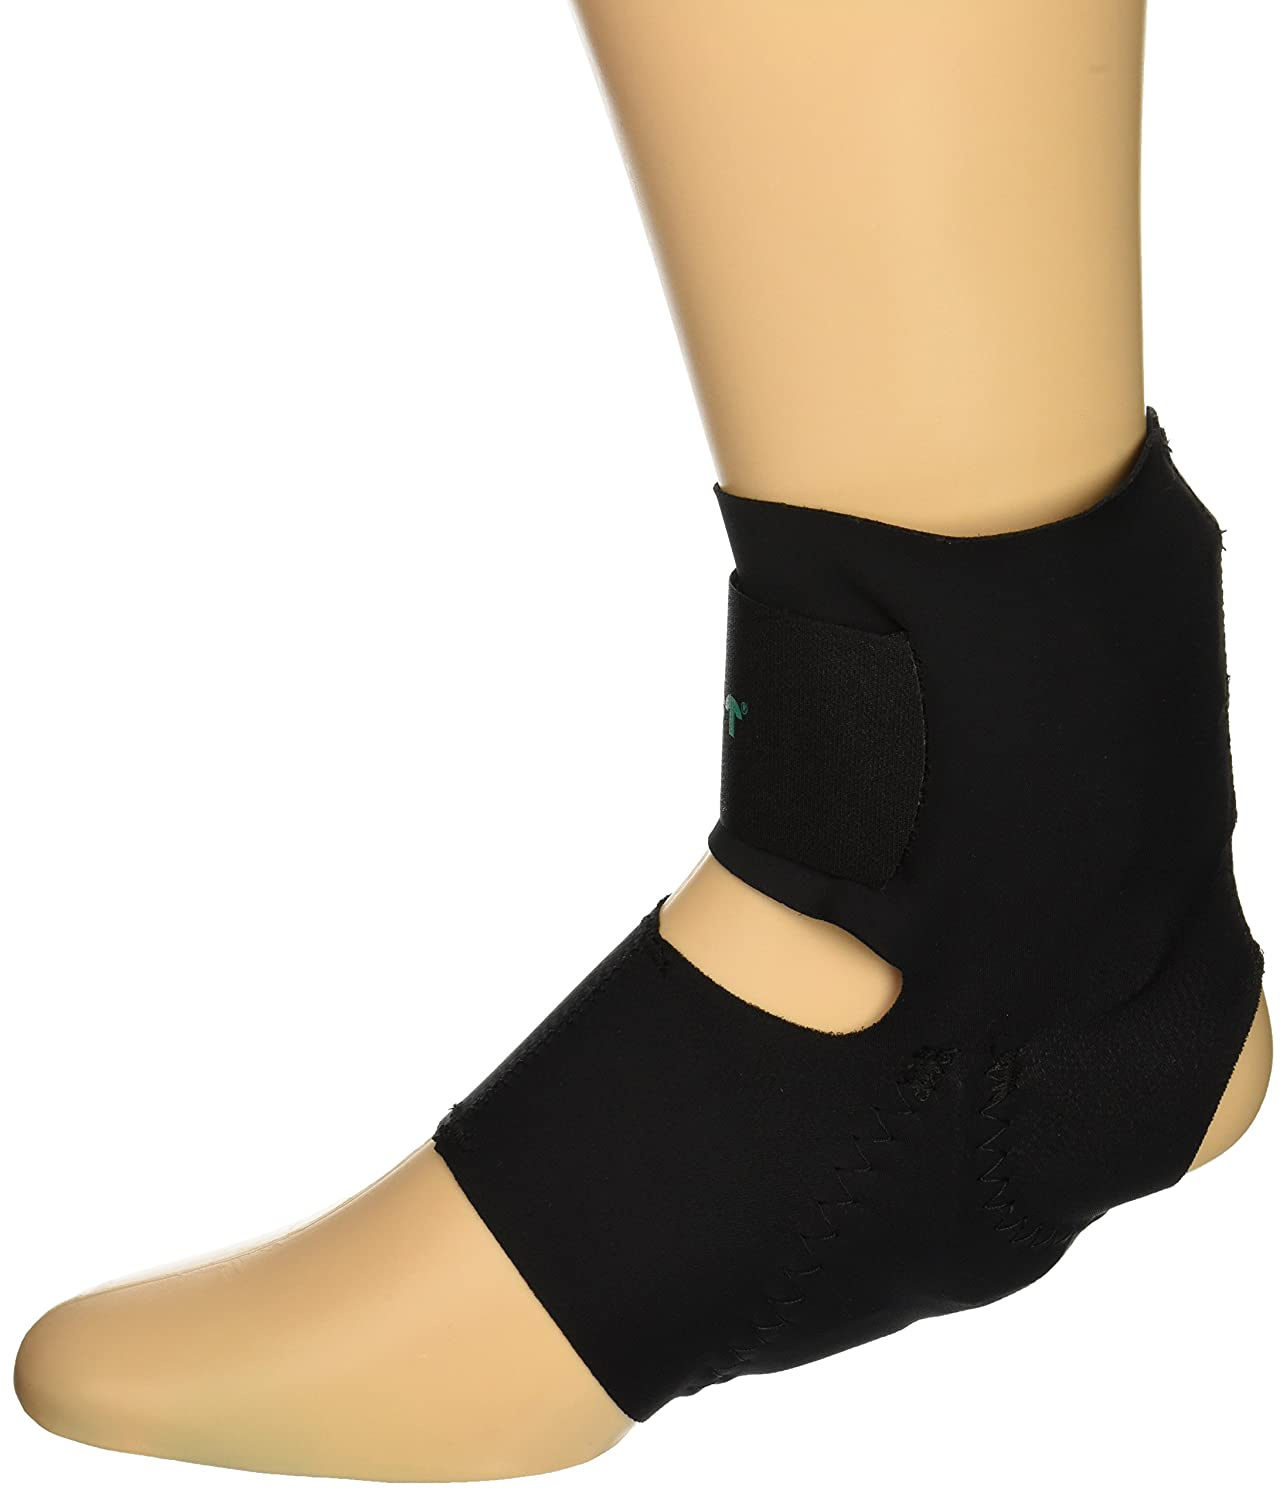 Aircast 09AS Airheel Small Outlet ☆ Free Shipping Brace free Ankle